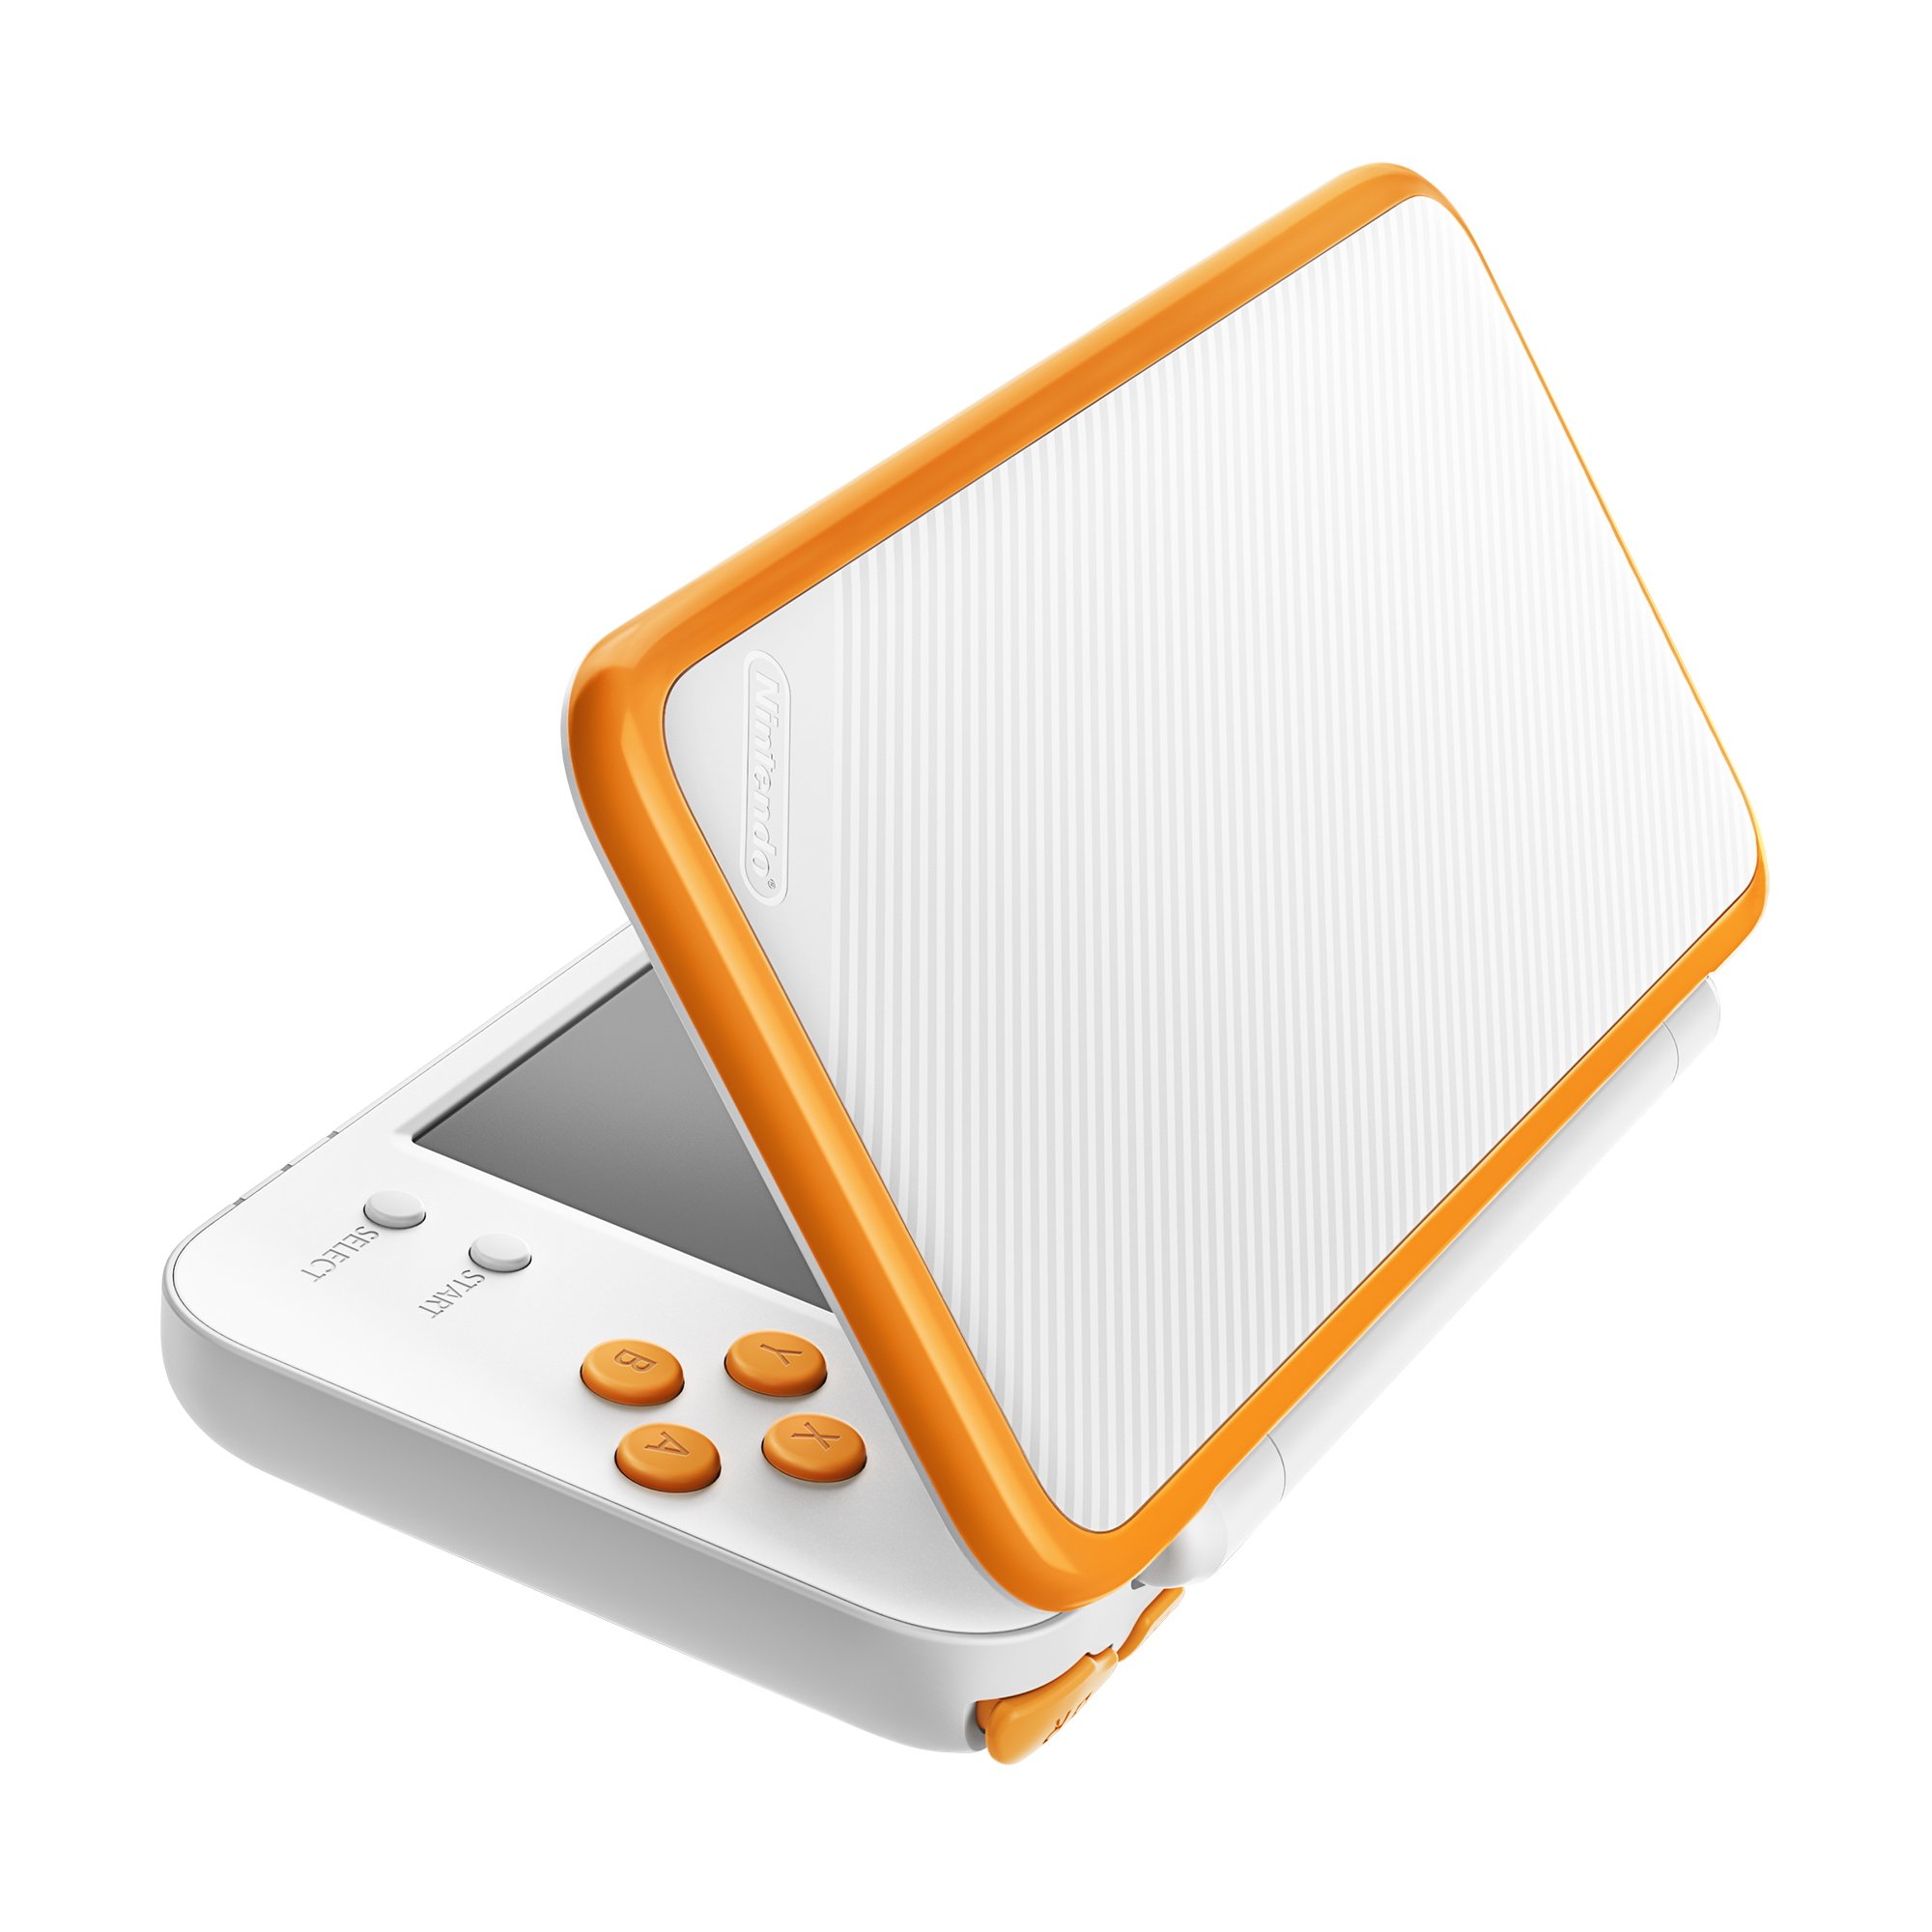 New Nintendo 2DS XL Handheld Game Console - Orange + White With Mario Kart 7 Pre-installed - Nintendo 2DS by Nintendo (Image #5)